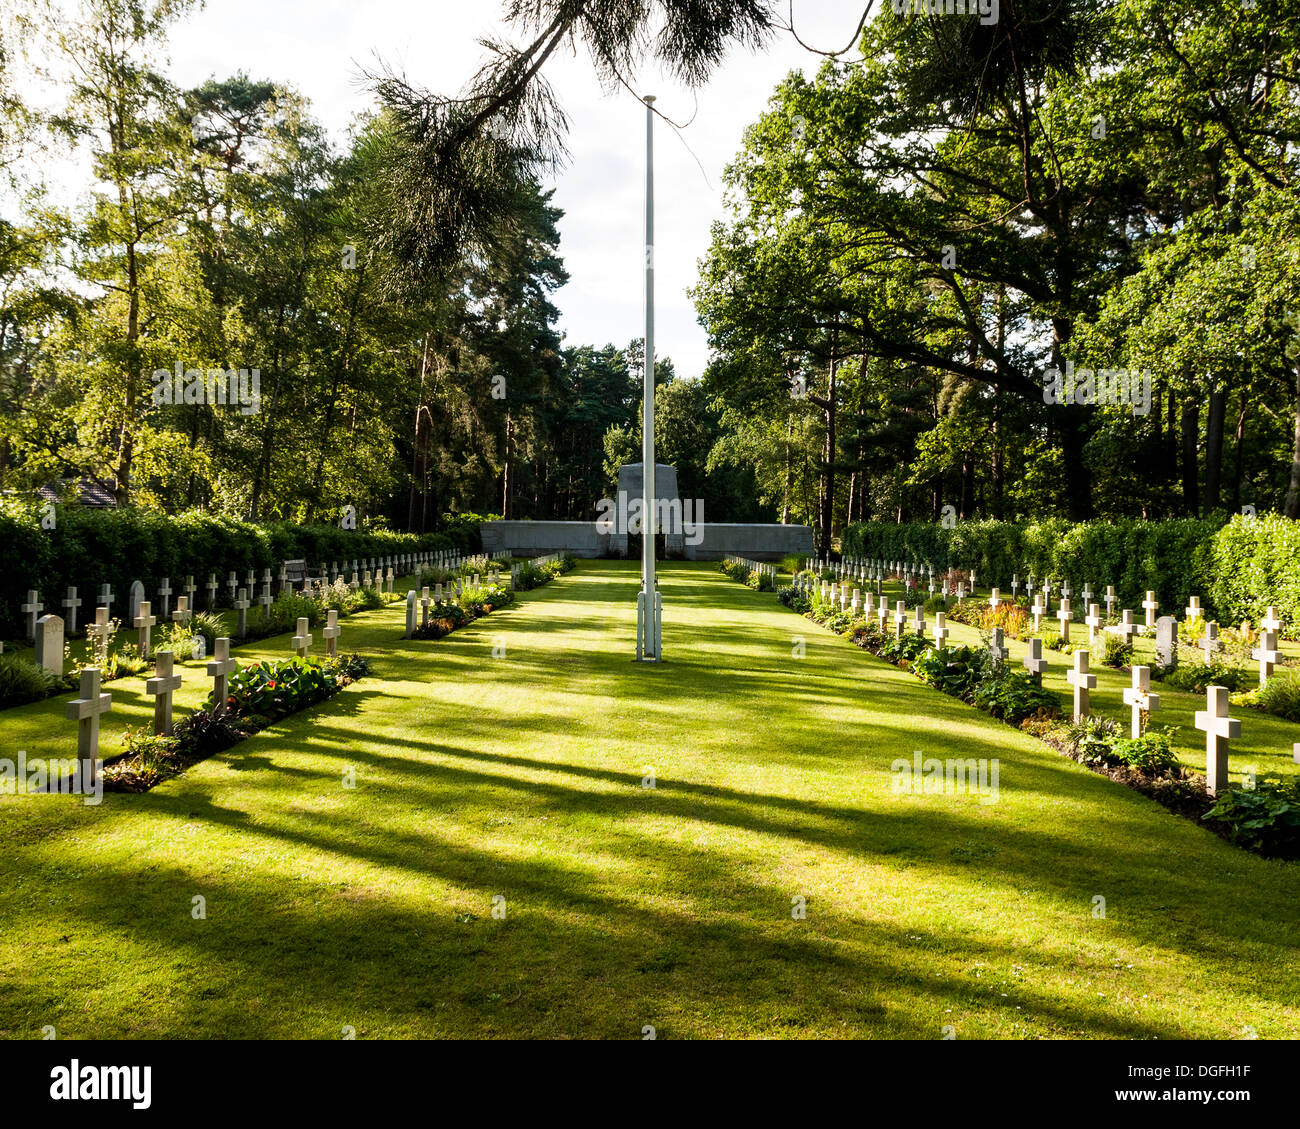 Brookwood Military Cemetery and memorials, Brookwood, United Kingdom. Architect: unknown, 2013. Graves and memorial. Stock Photo